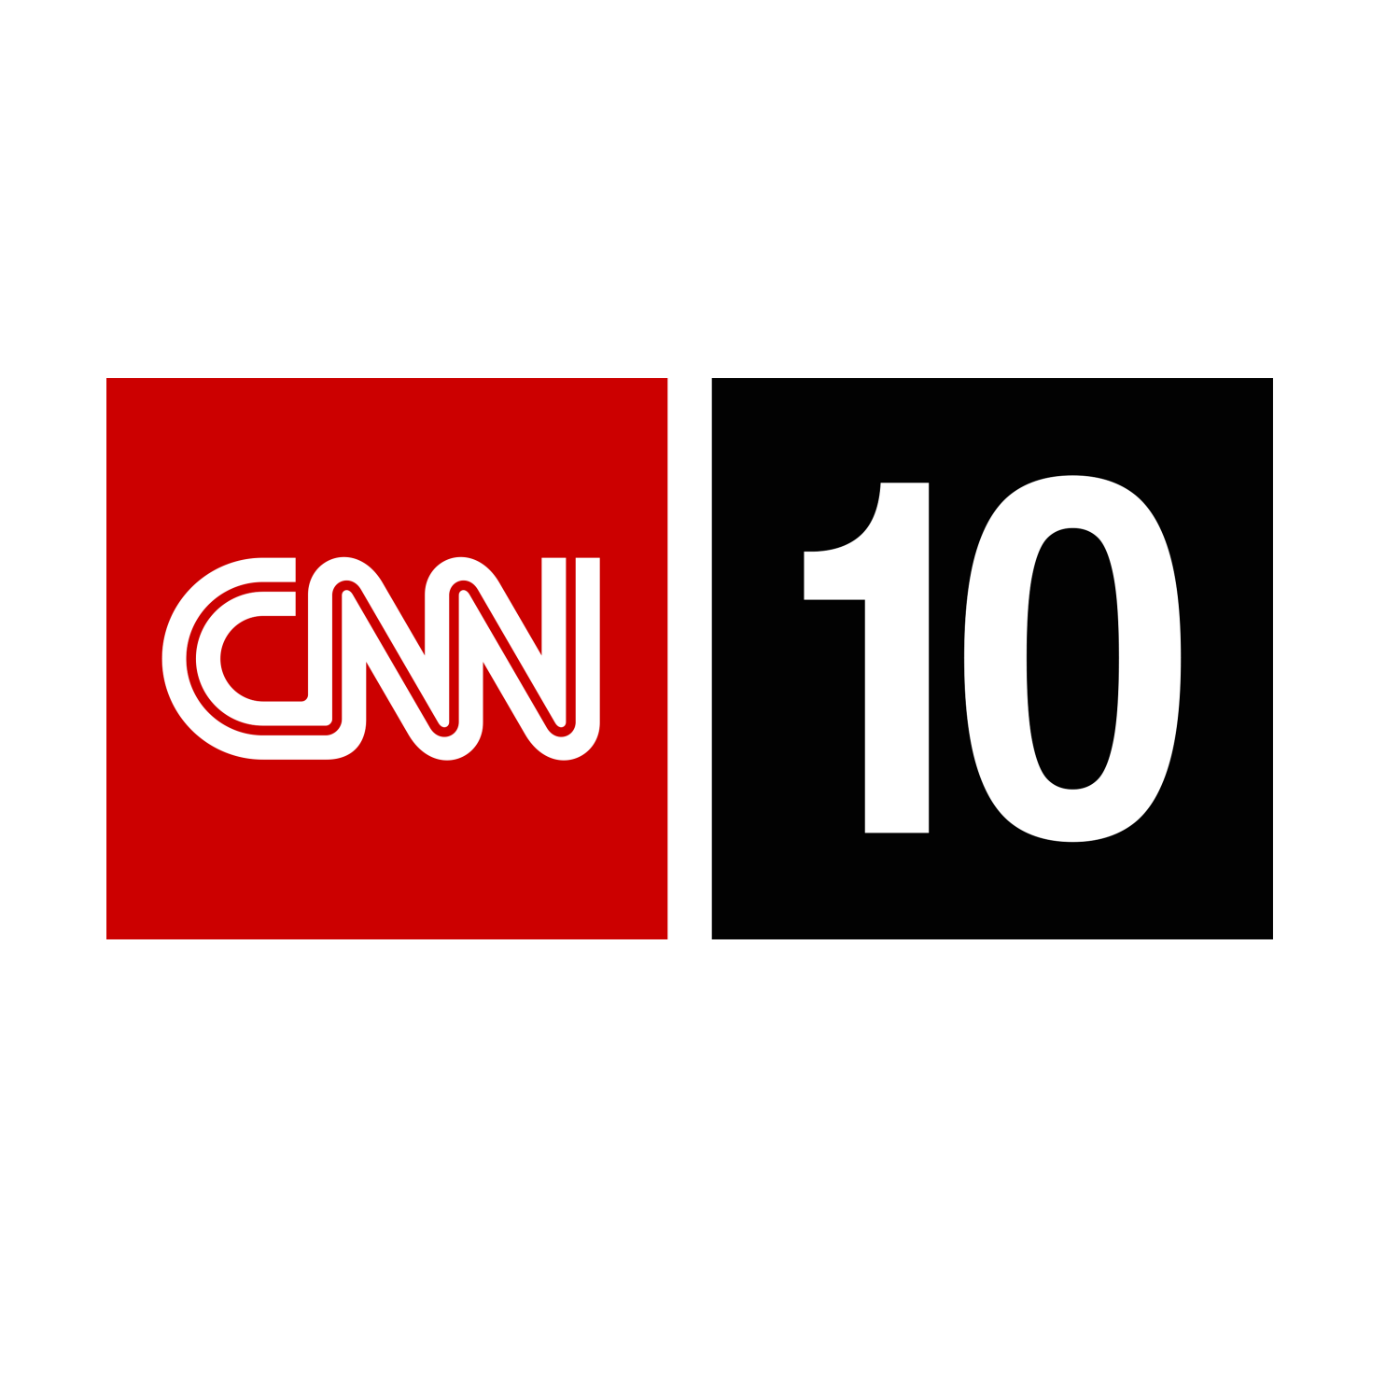 CNN Student News - May 2, 2013